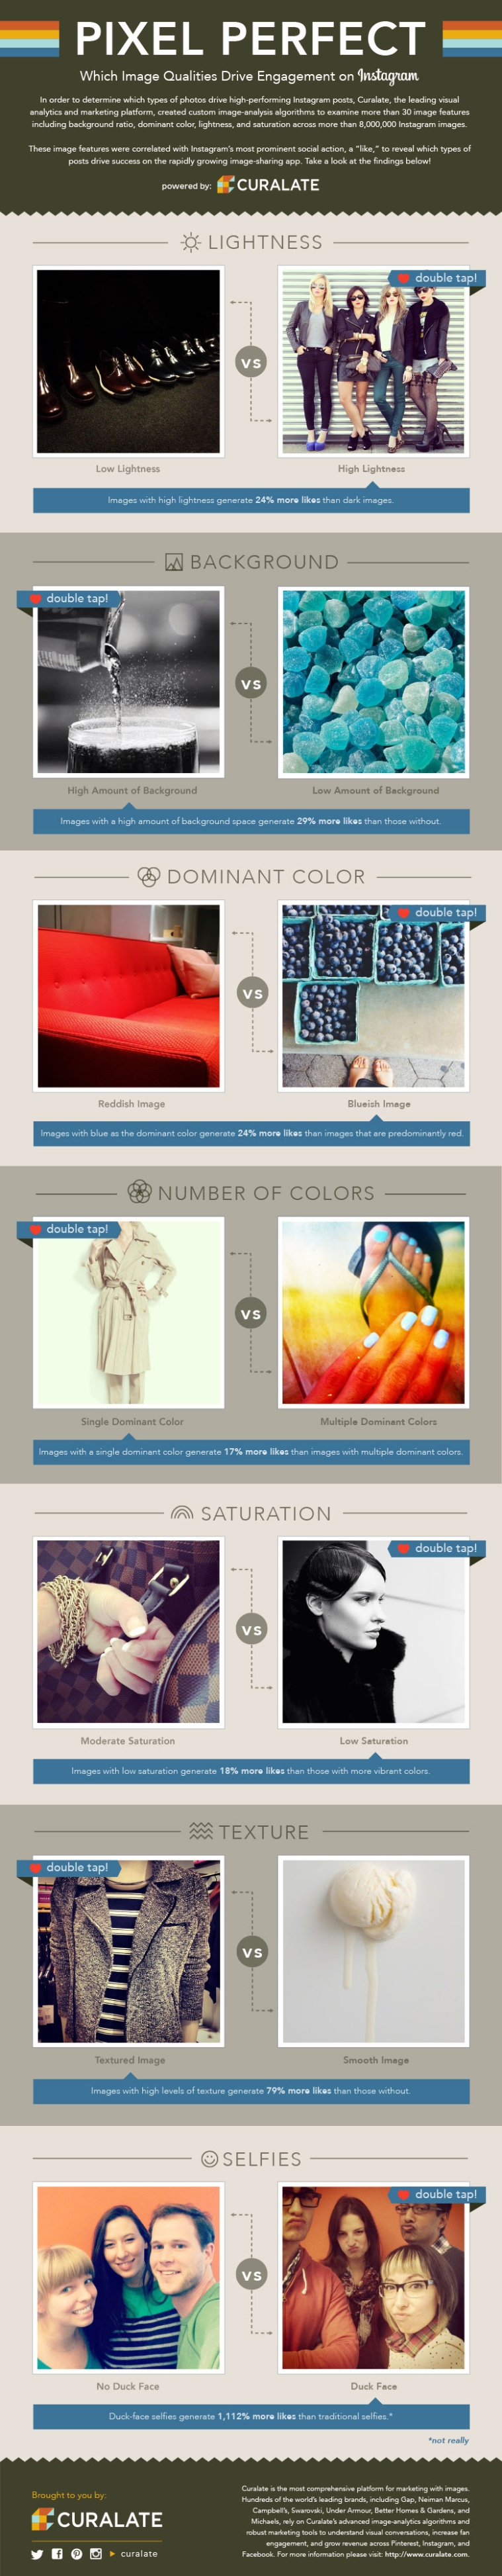 7 tips that will get you more Instagram likes